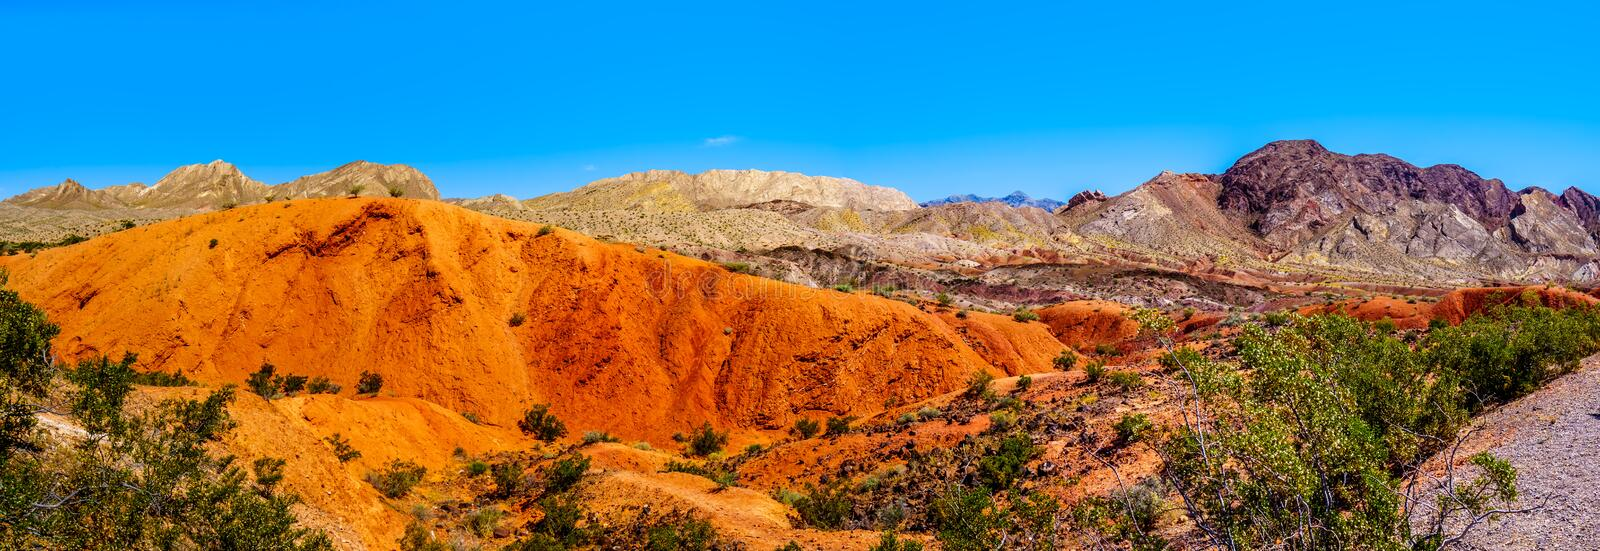 Panorama View of the colorful Mountains along Northshore Road SR167 in Lake Mead National Recreation Area stock image